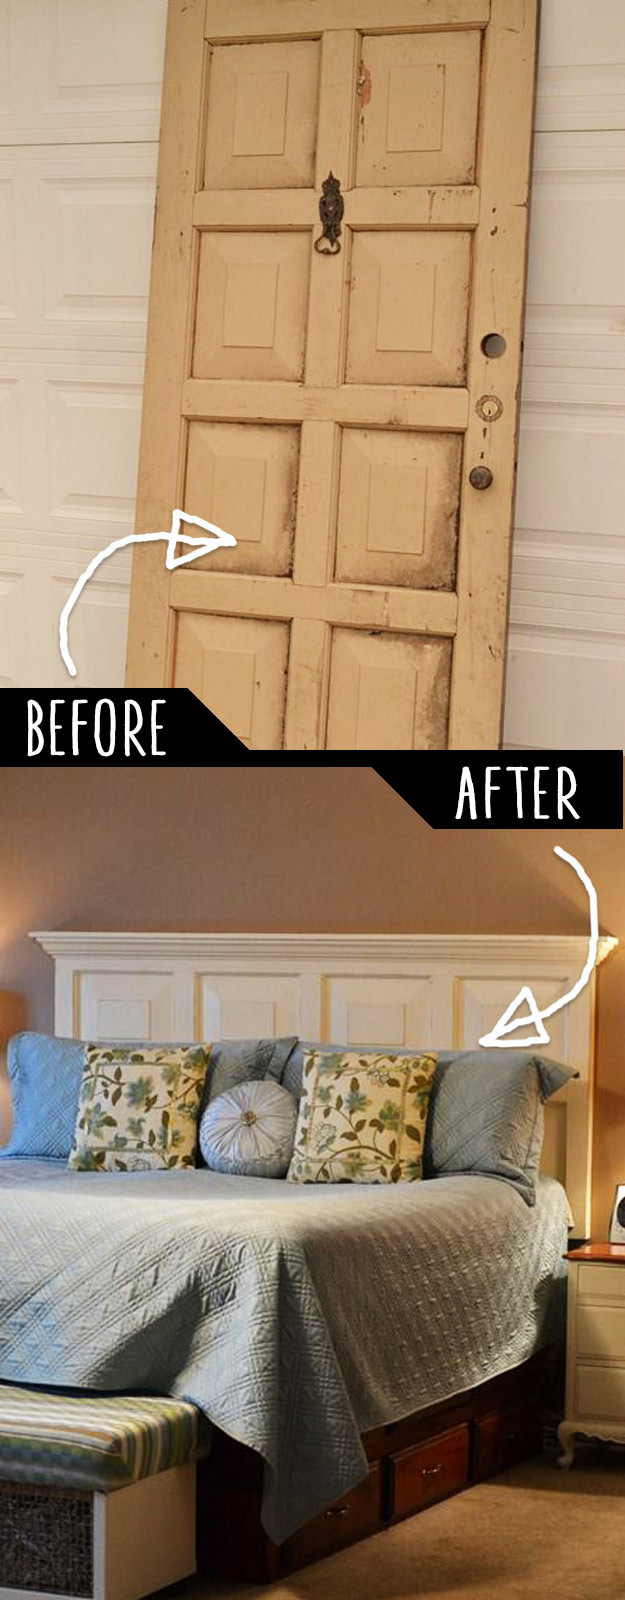 diy furniture hacks door headboard cool ideas for creative do it yourself furniture made - Cheap Home Decor And Furniture